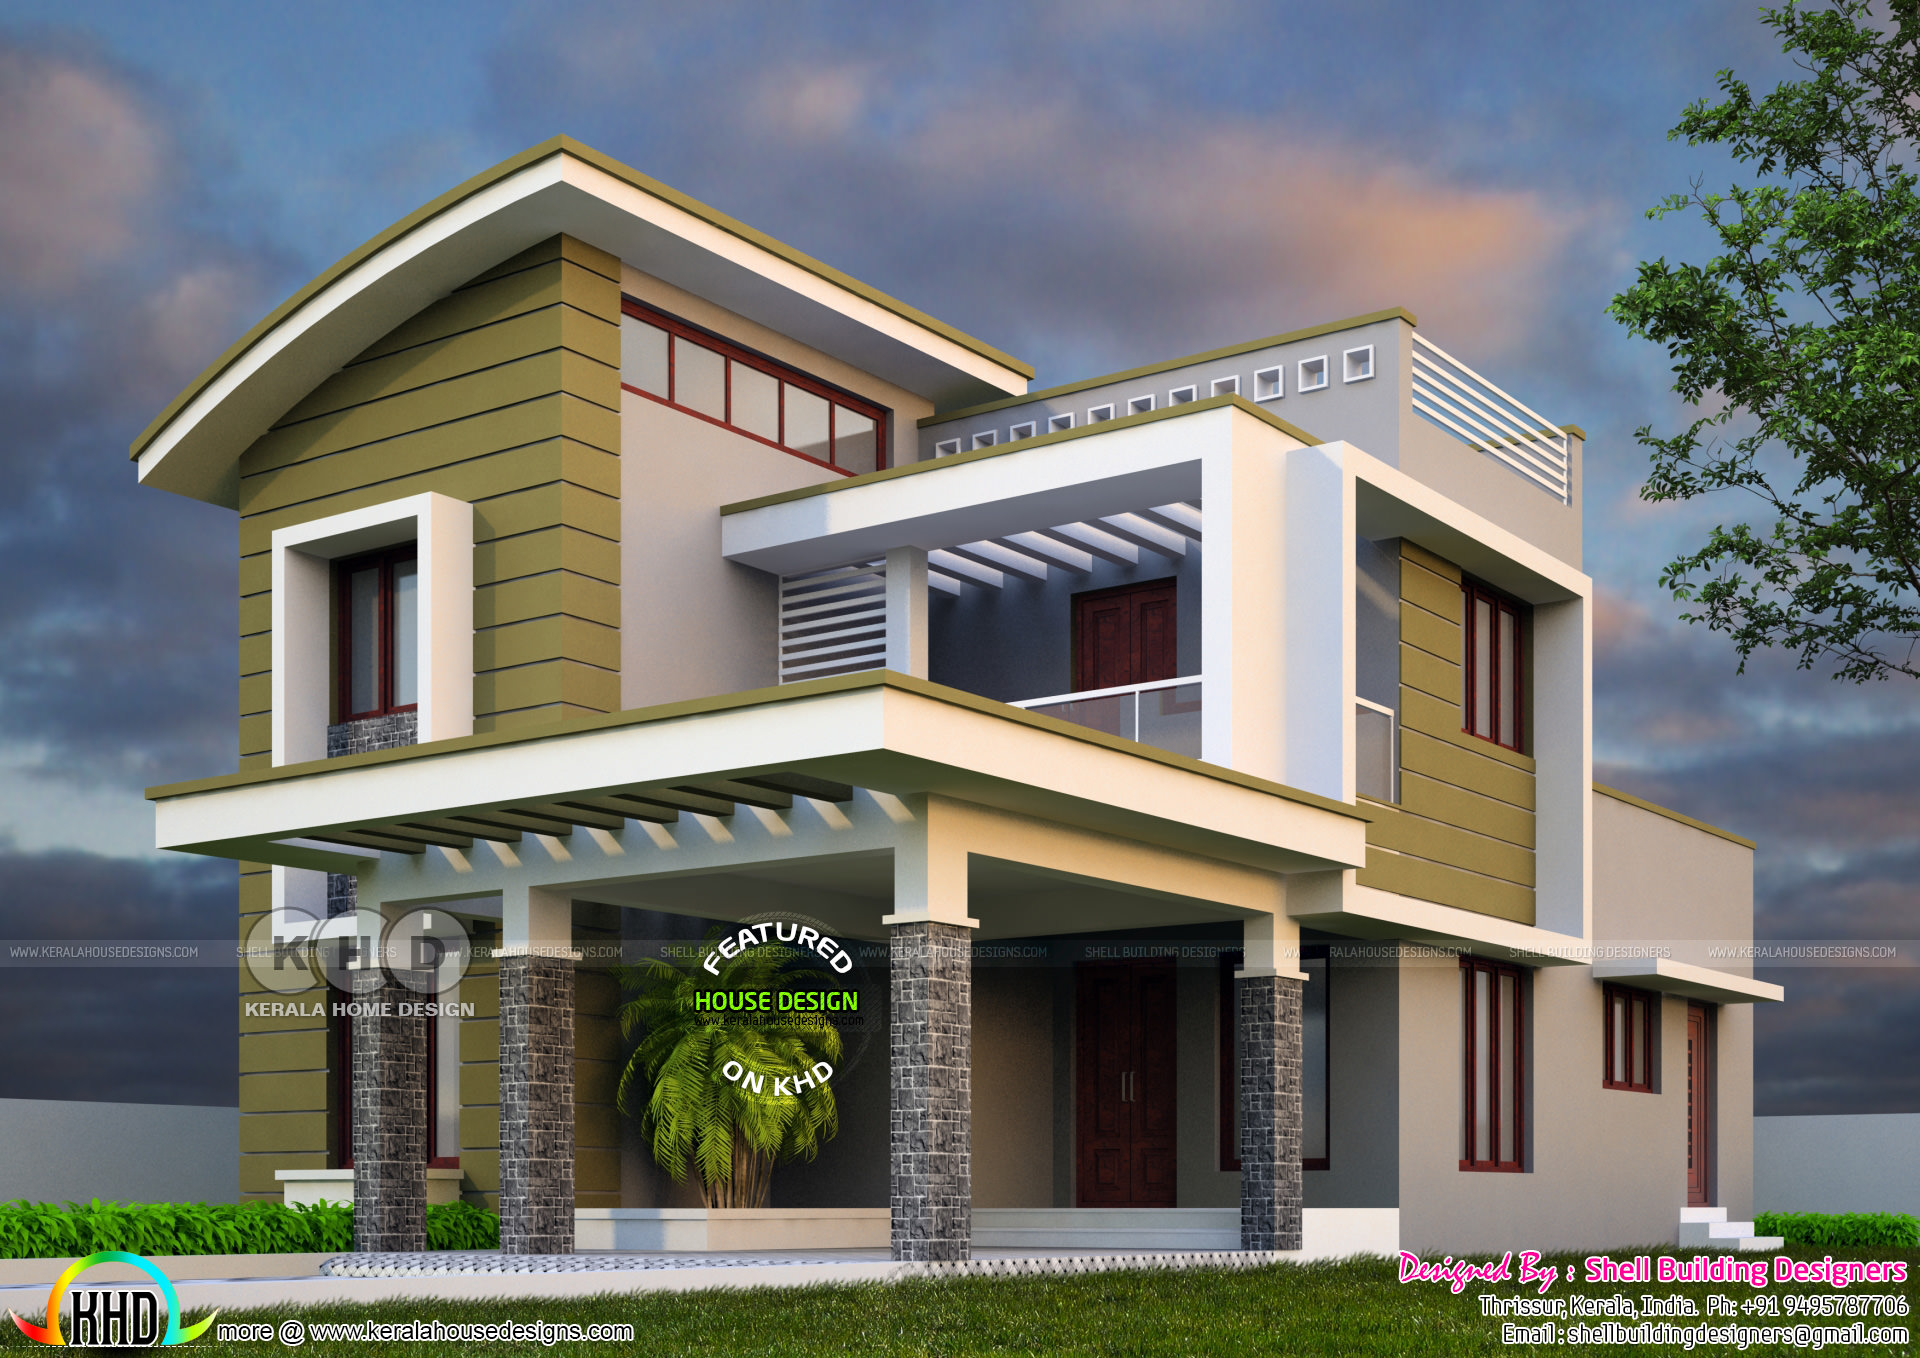 2375 sq ft 4 bedroom modern house plan kerala home for Kerala house plans 4 bedroom